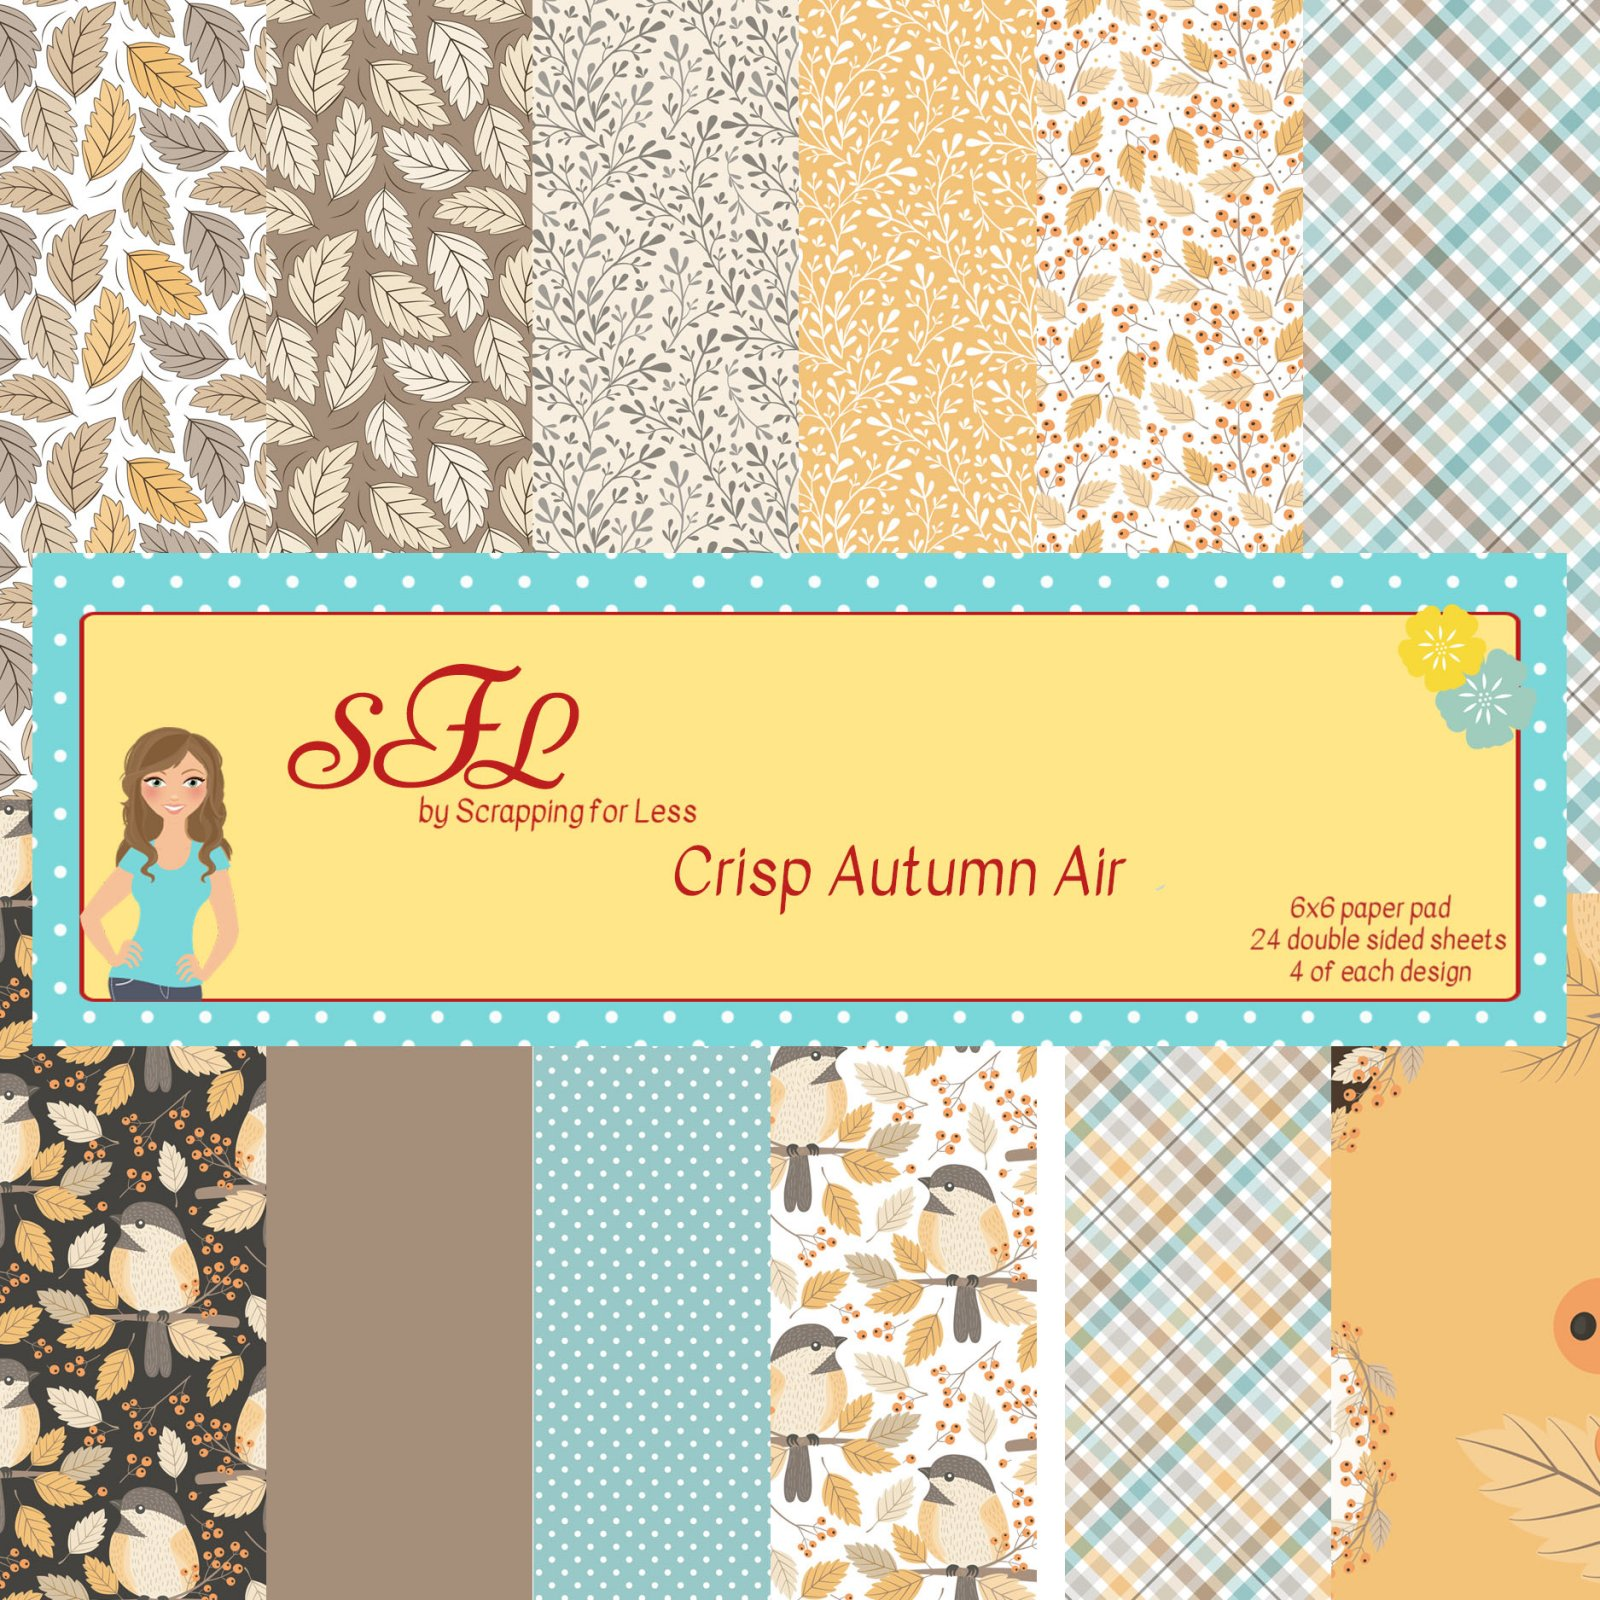 Scrapping for Less Crisp Autumn Air 6x6 Paper Pad -